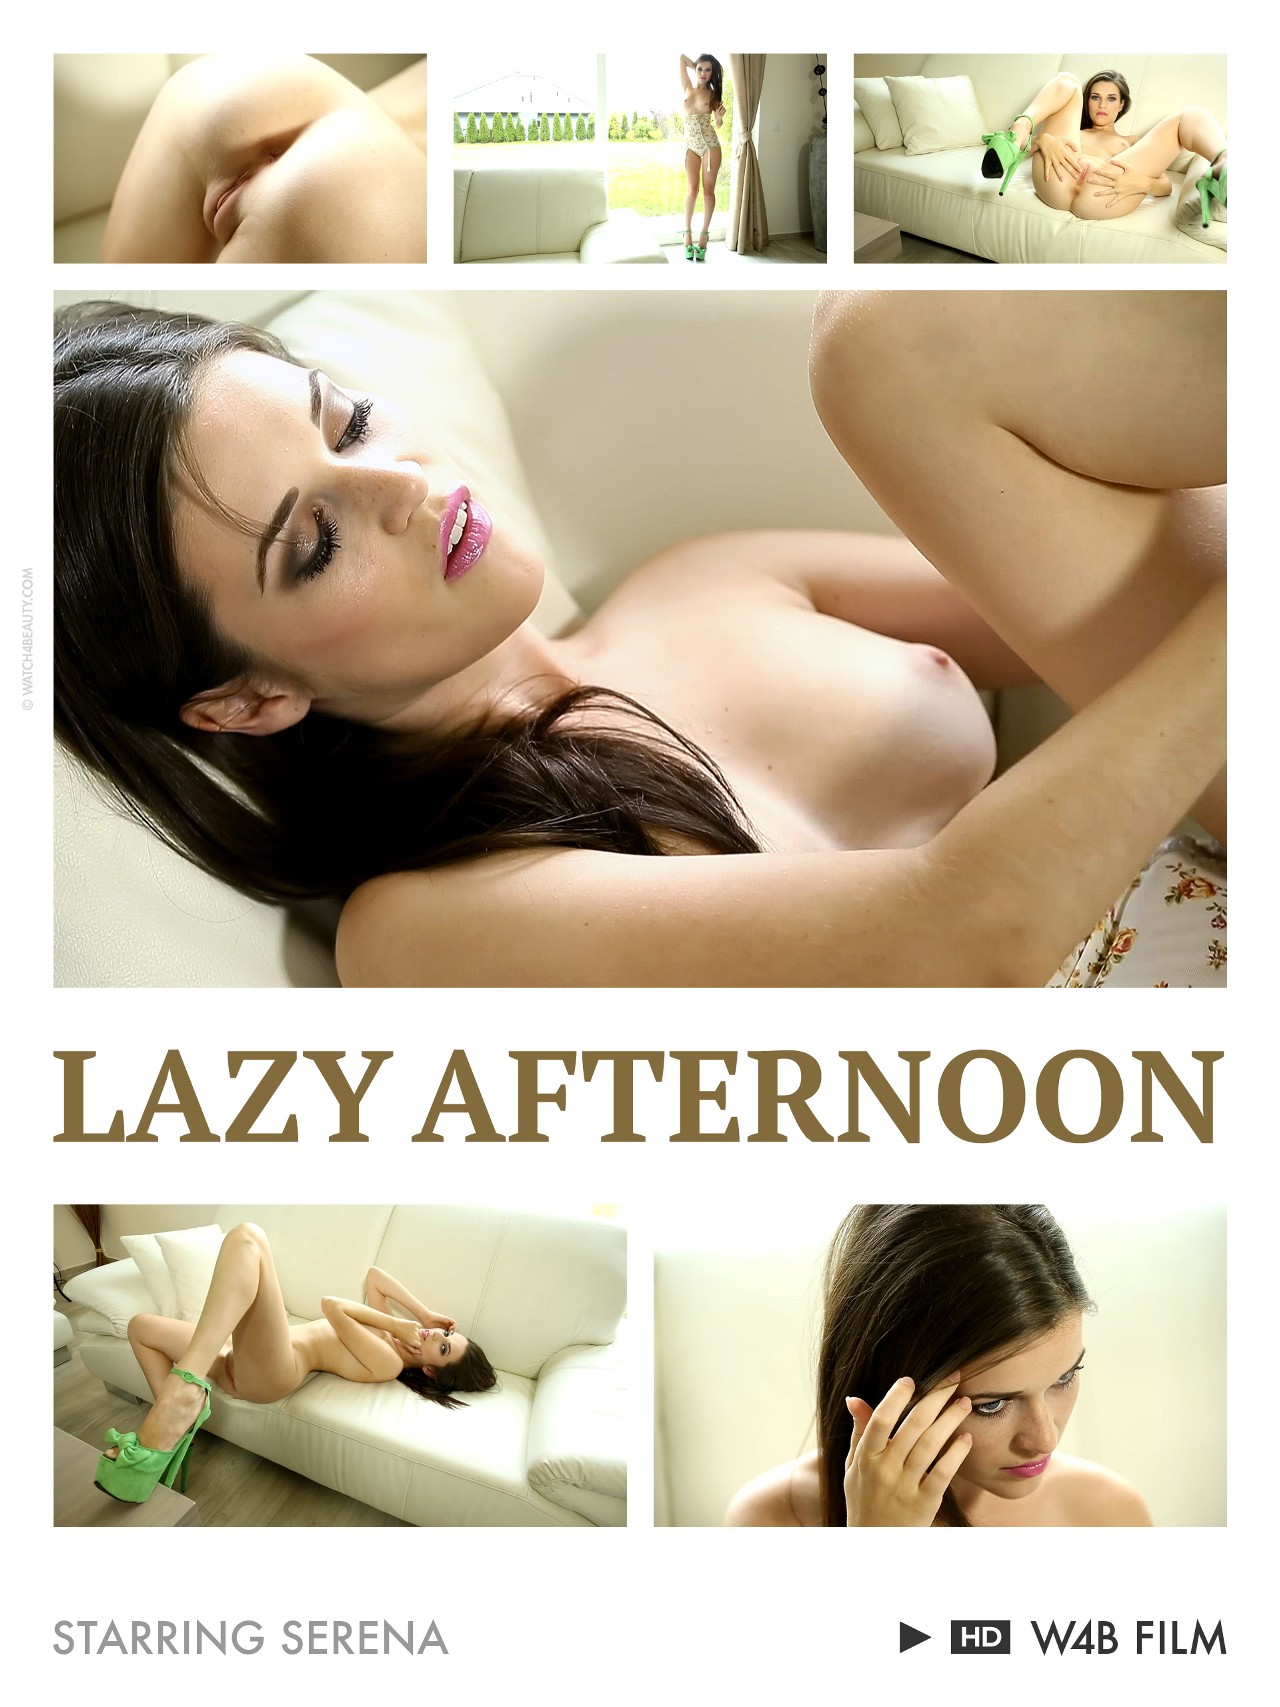 Serena: Lazy afternoon